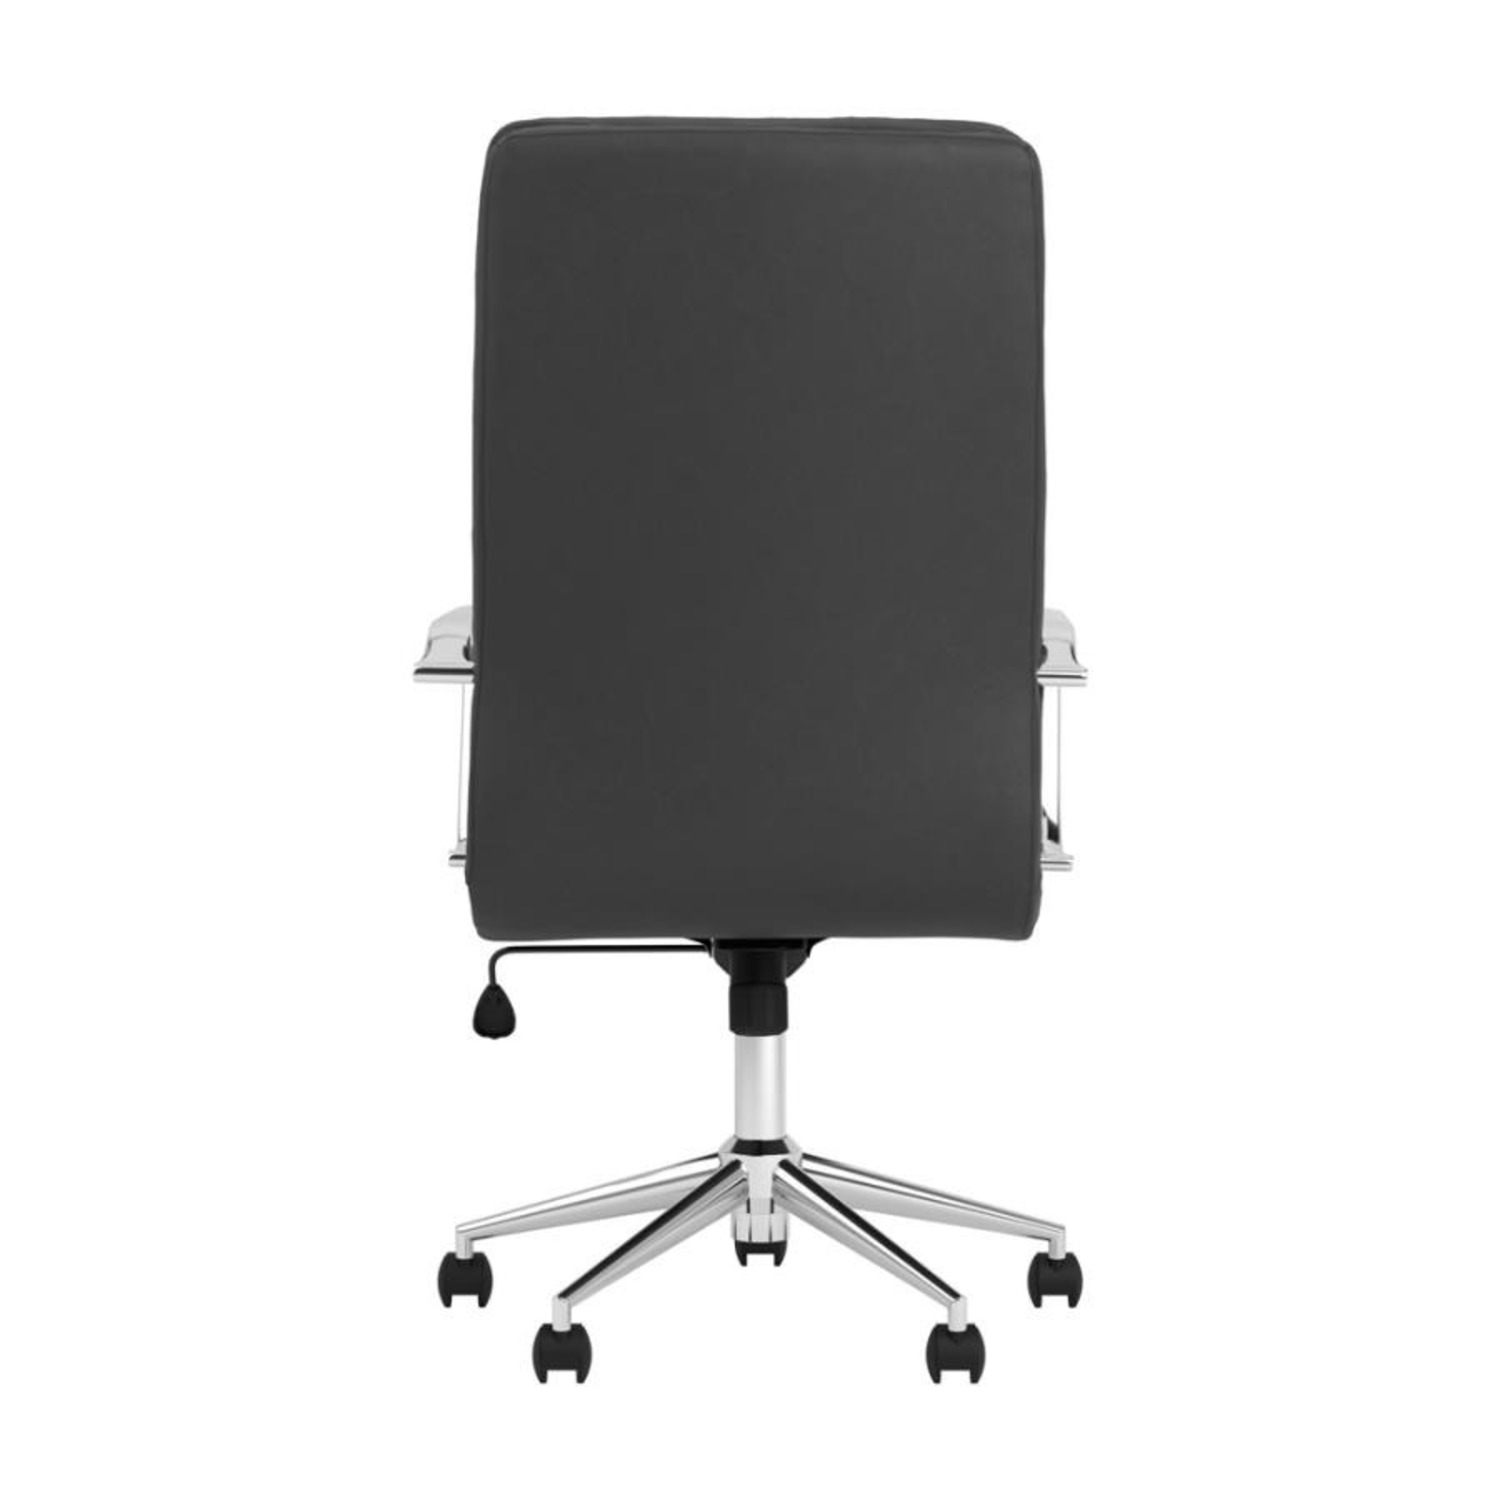 Office Chair In Black Cushion Leatherette Finish - image-4